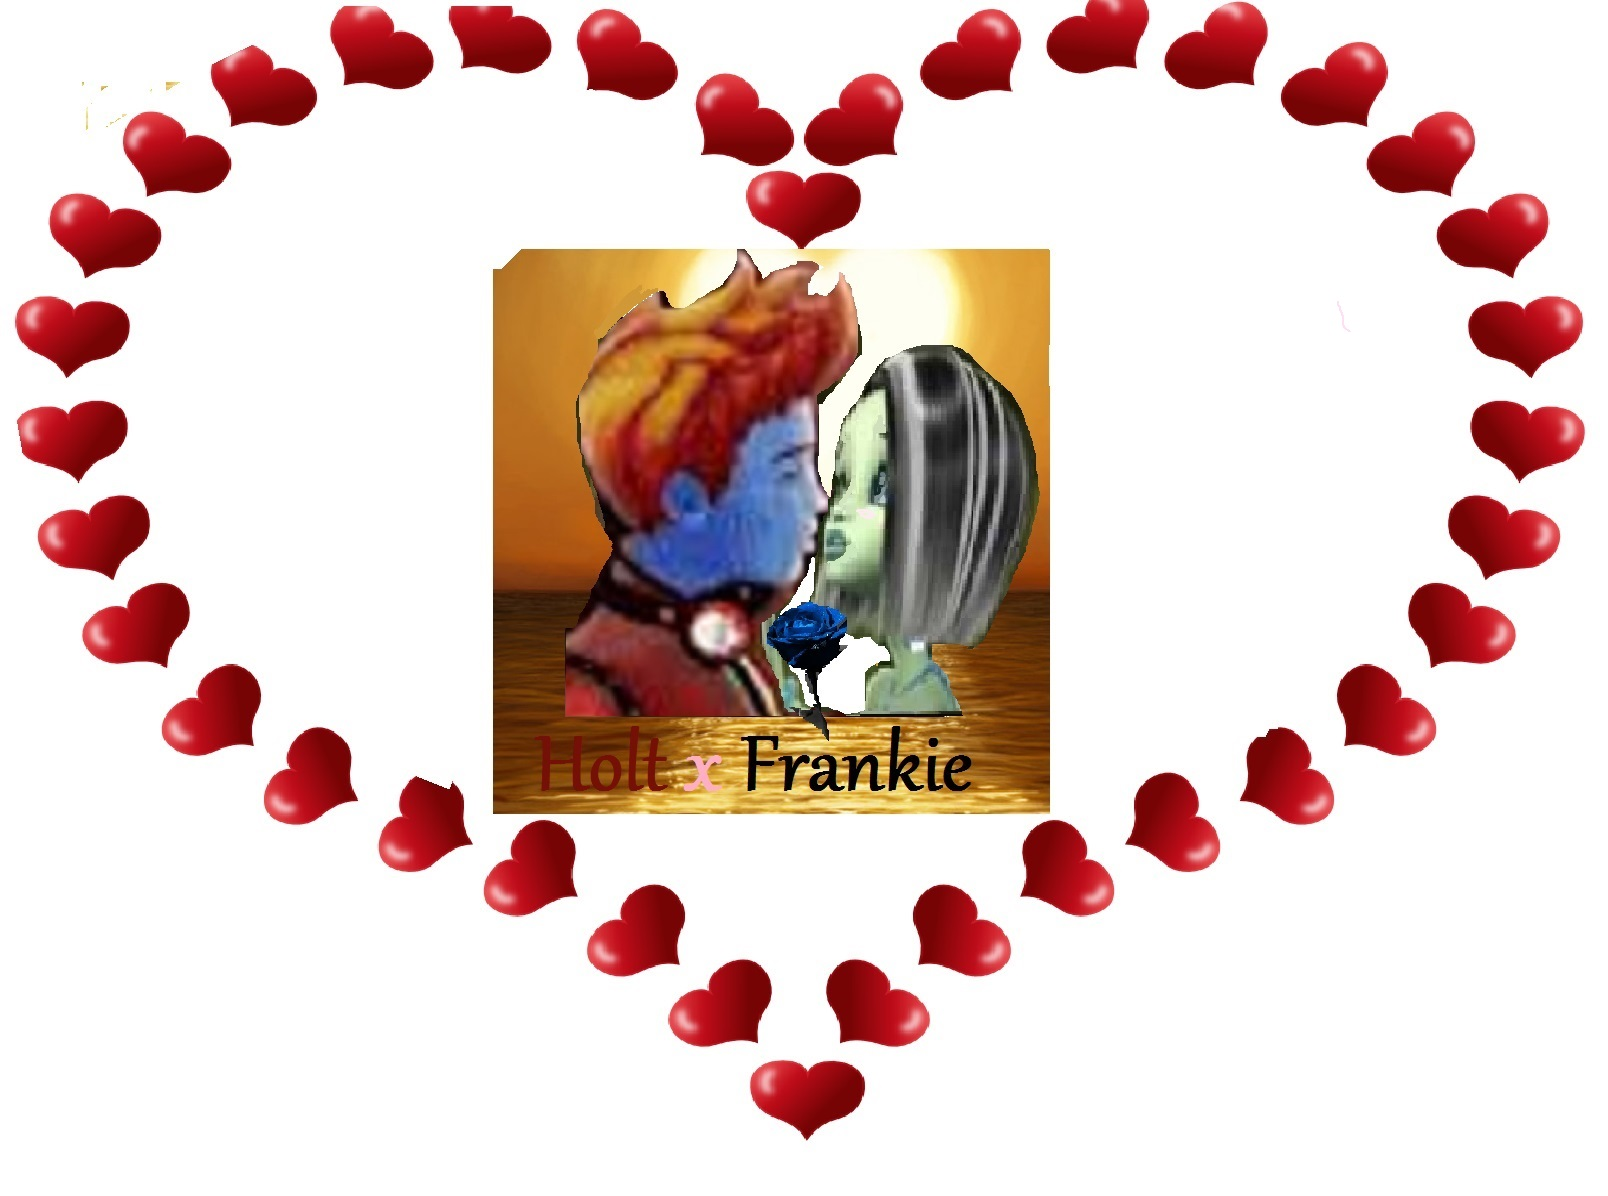 monster high s frankiexholt4ever images holt x frankie kiss sunset